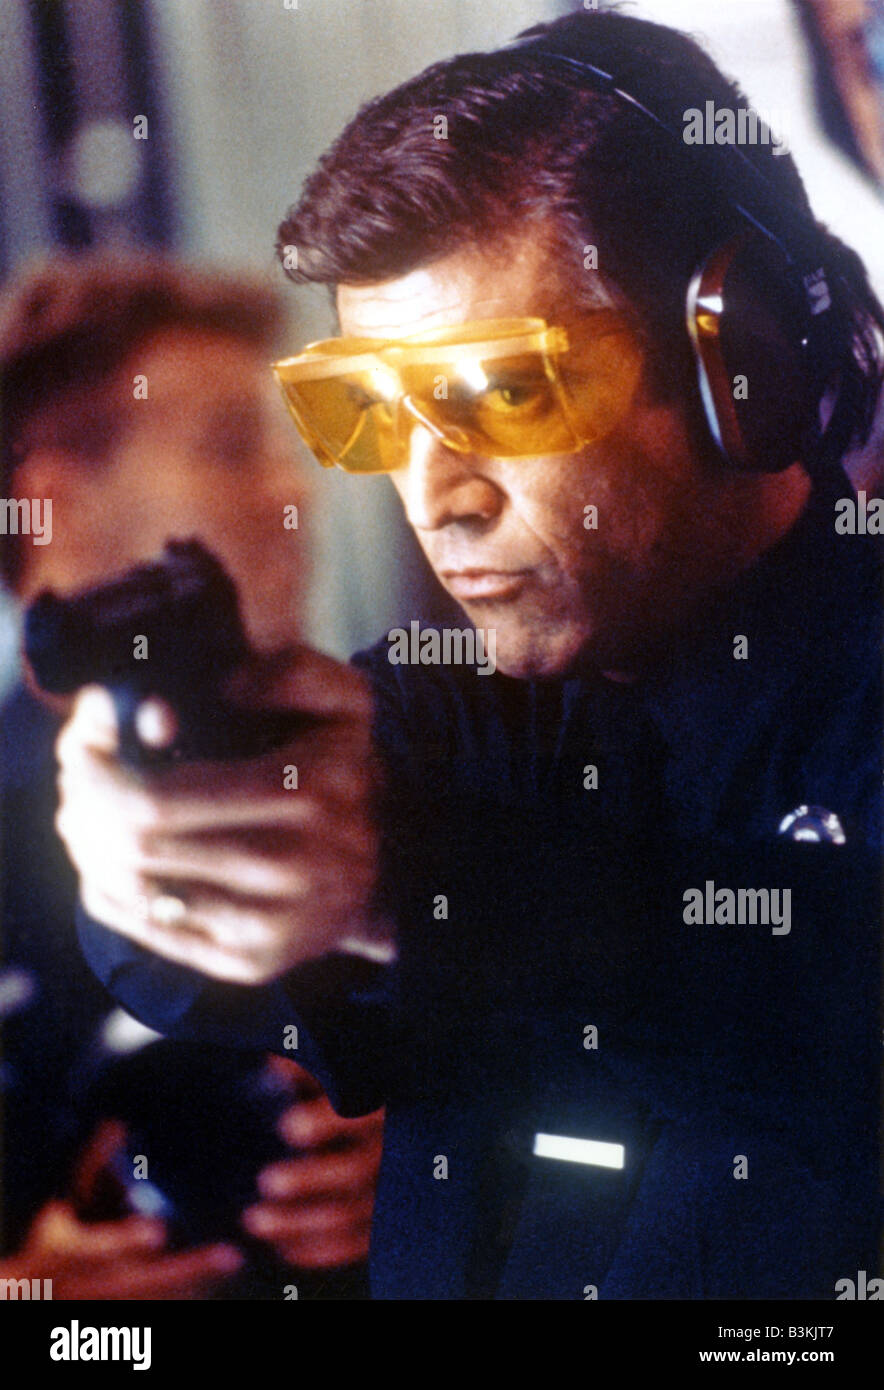 LEATHAL Waffe 3 1992 Warner Film mit Joe Pesci Stockbild